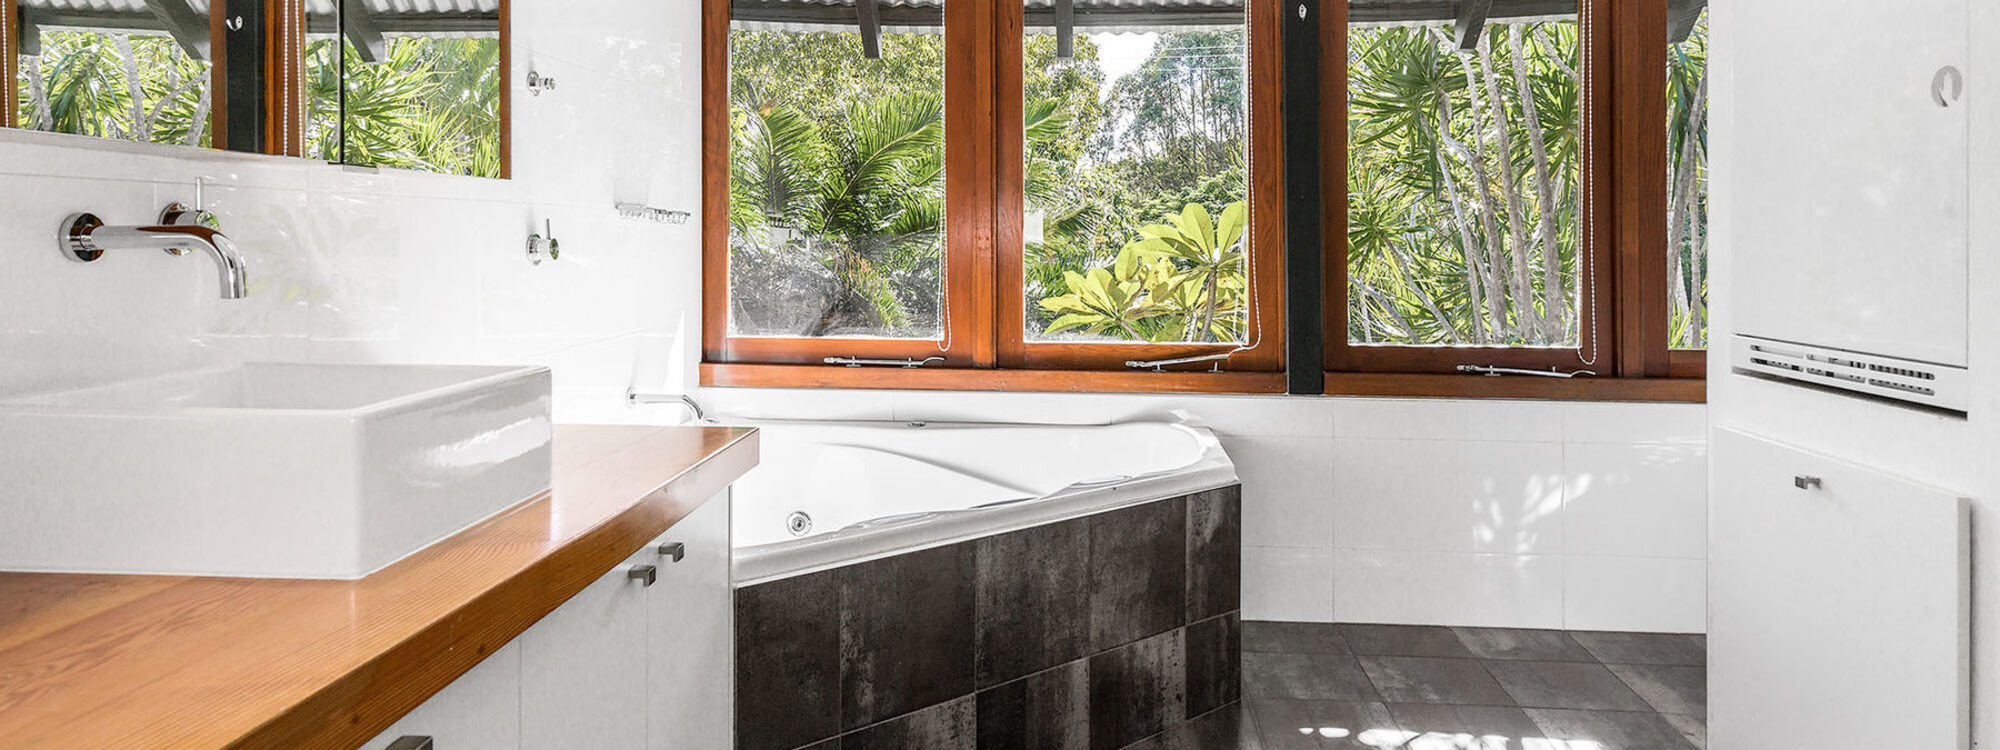 Ourmuli - Byron Bay - Shared Bathroom and Laundry b